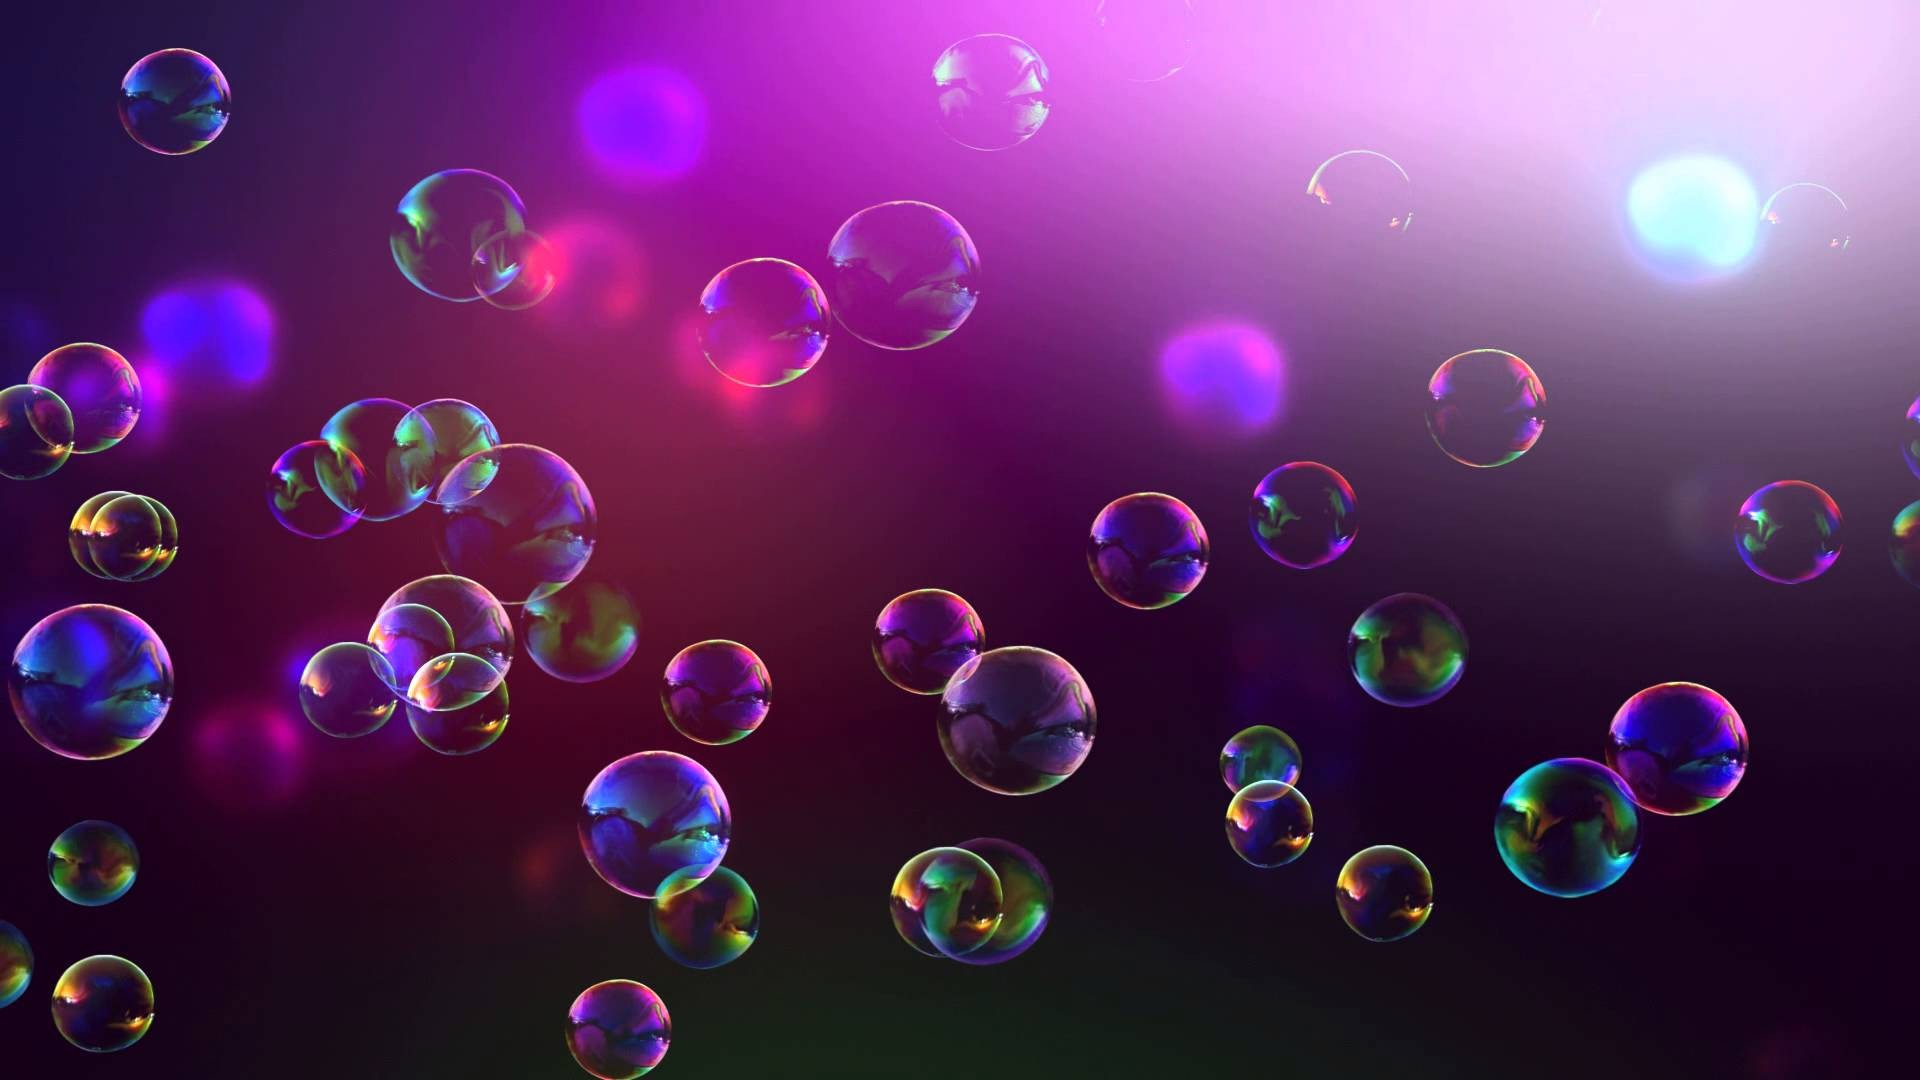 Ipad Wallpaper Little Plant In A Bubble: Bubbles Background ·① Download Free Amazing Full HD